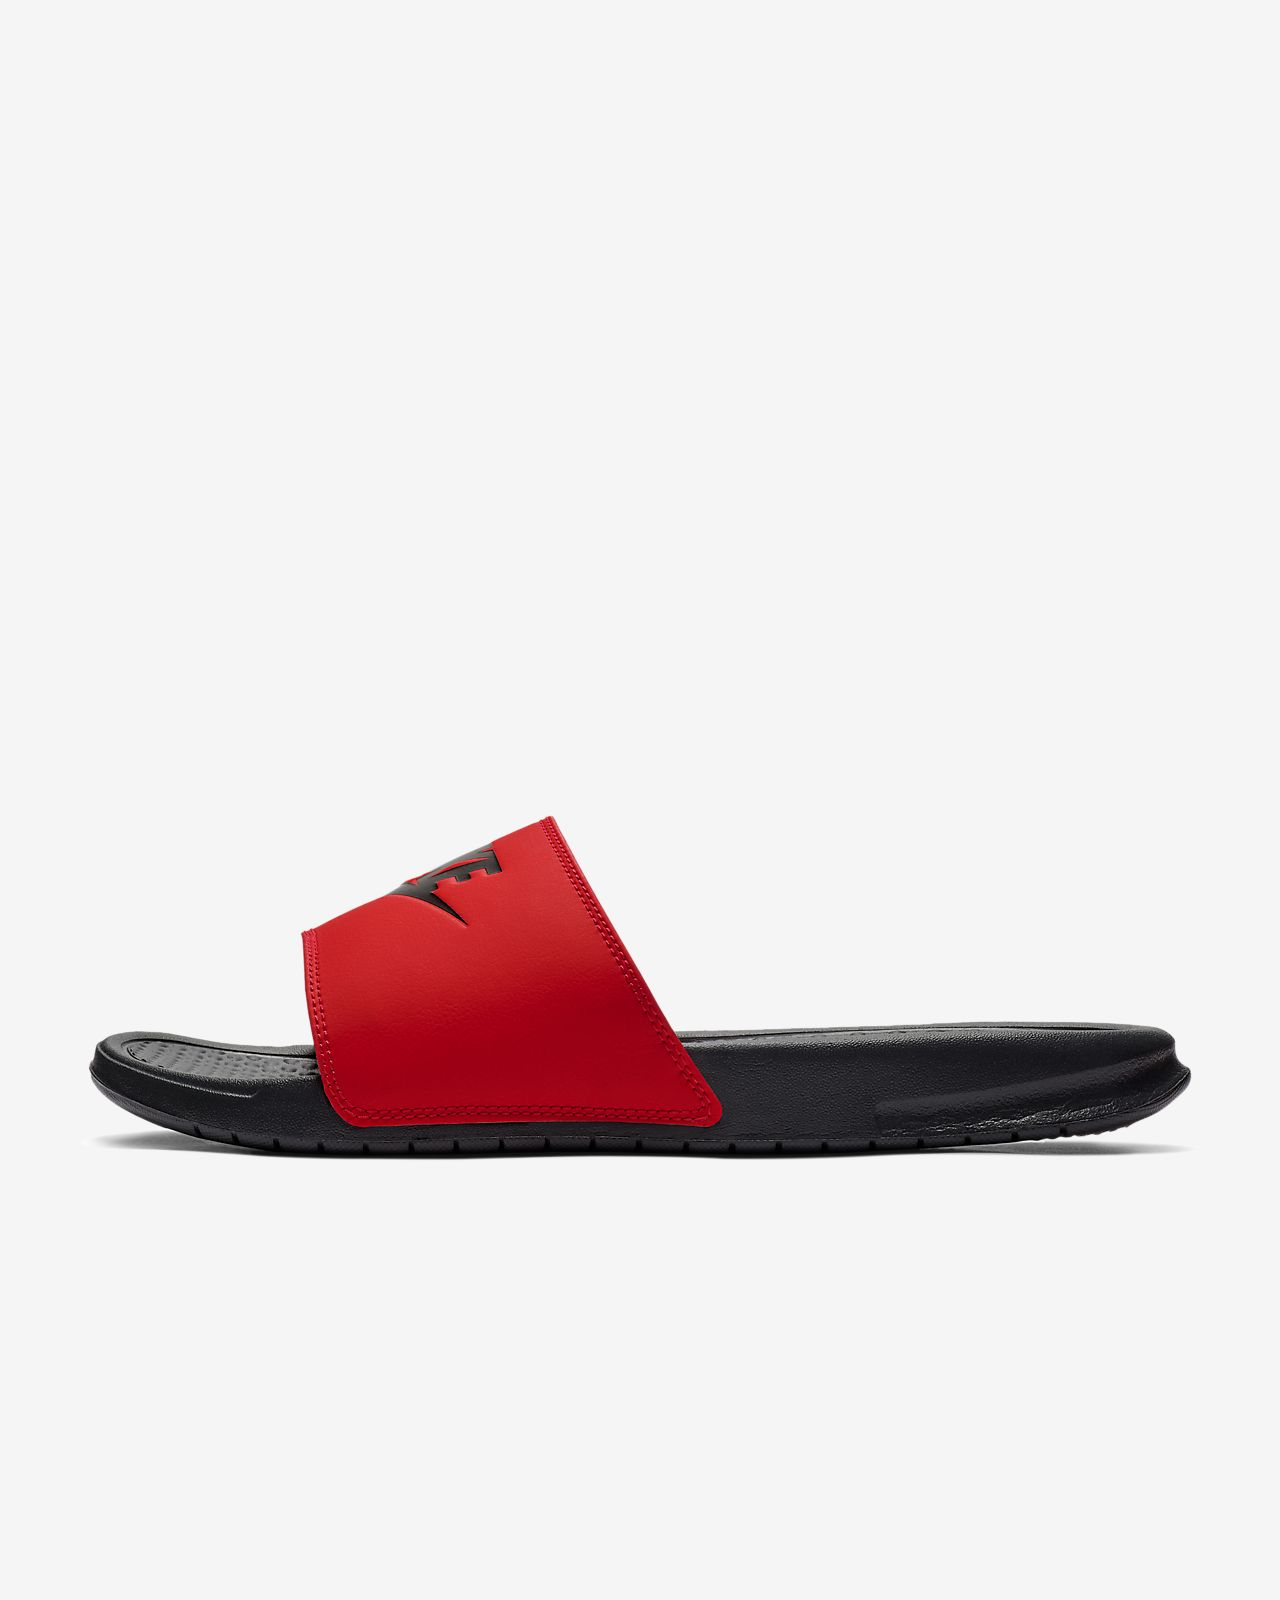 665de3931 Low Resolution Nike Benassi Slide Nike Benassi Slide